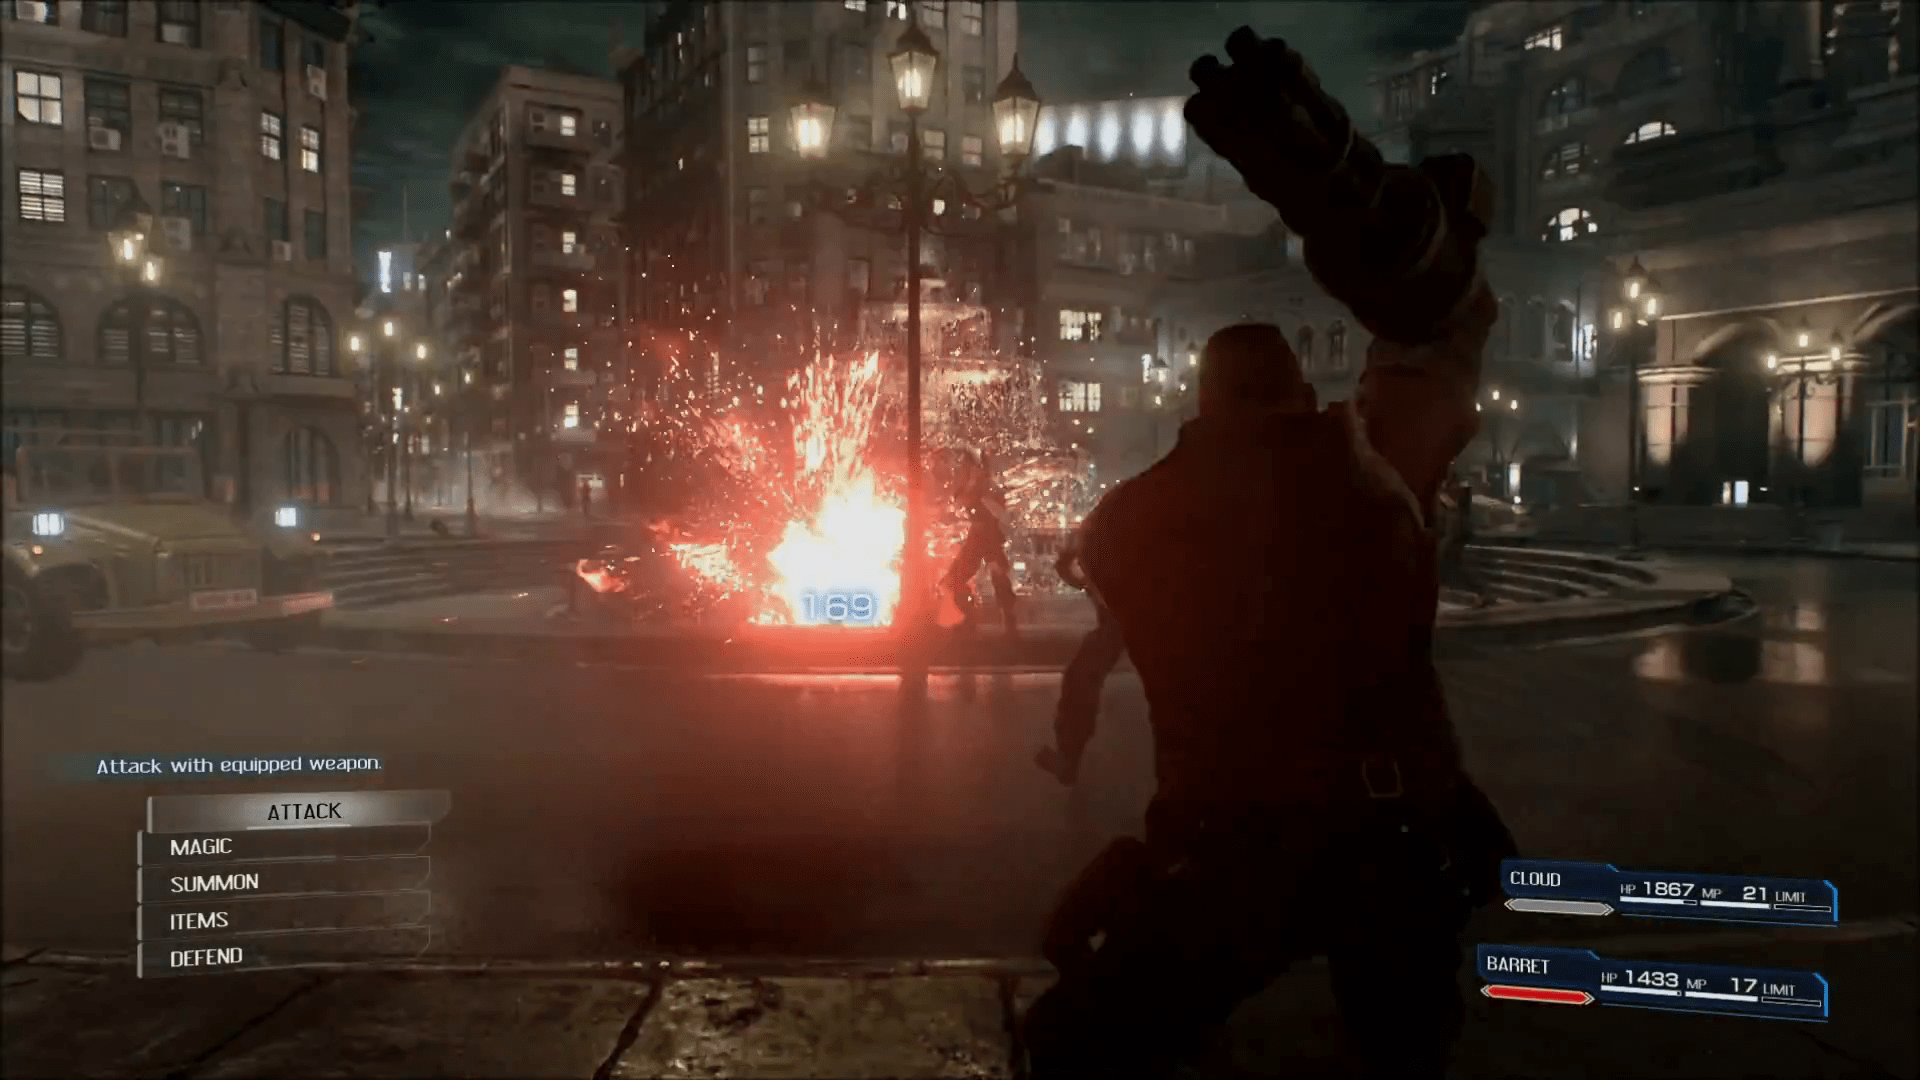 Final Fantasy 7 Remake PlayStation Experience 15 Trailer The Escapist